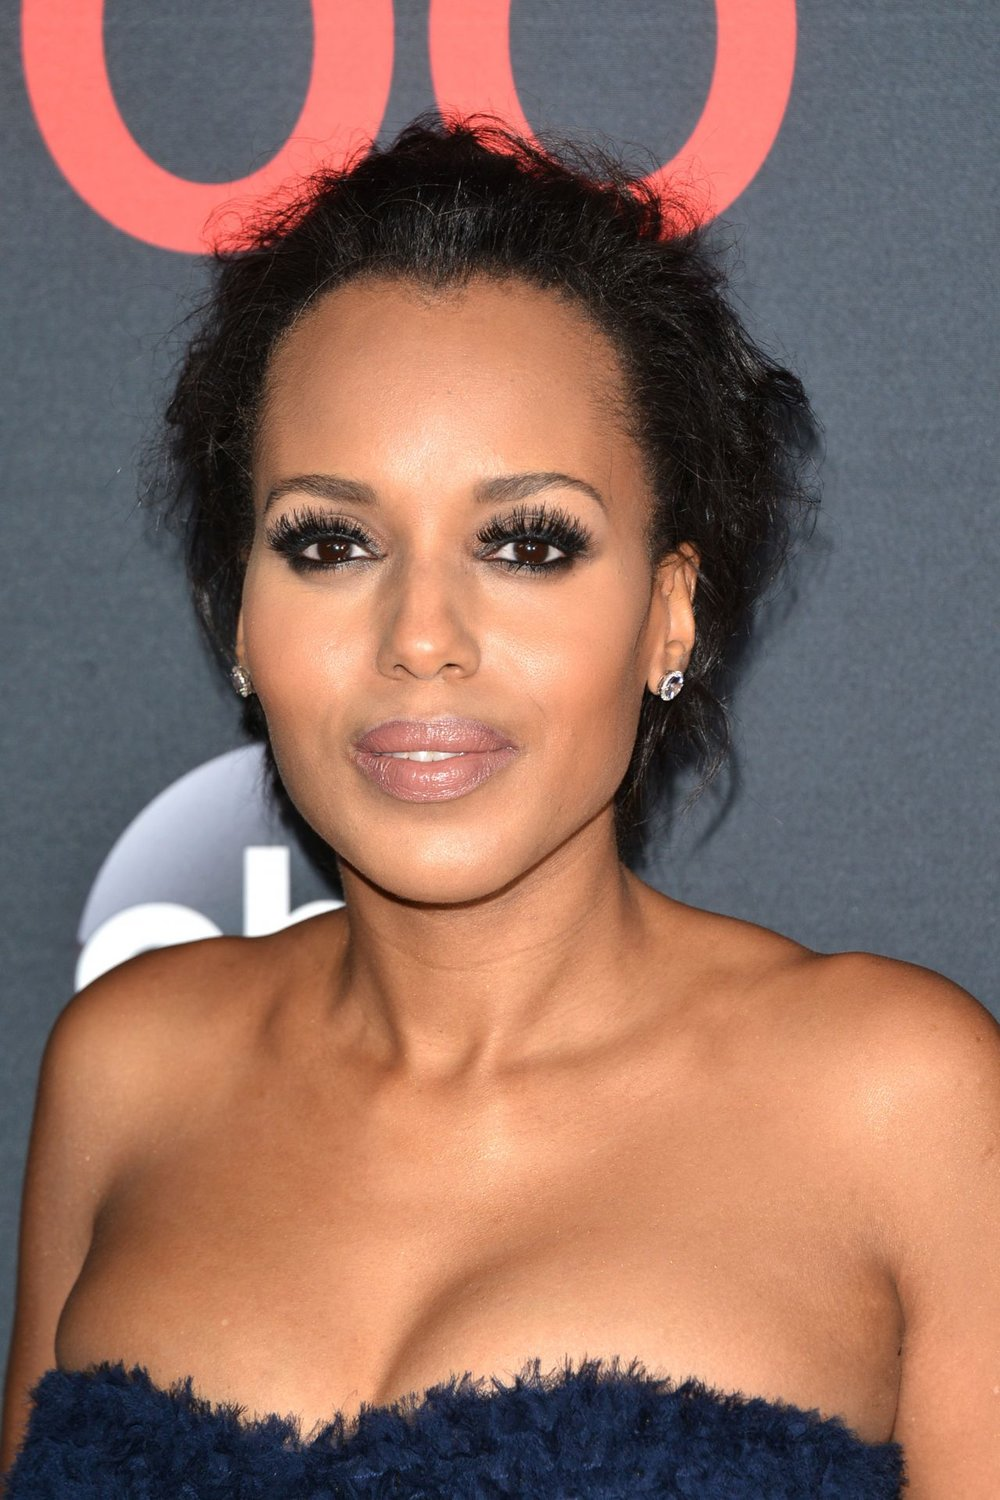 kerry-washington-scandal-100th-episode-celebration-in-weho-4-8-2017-1.jpg